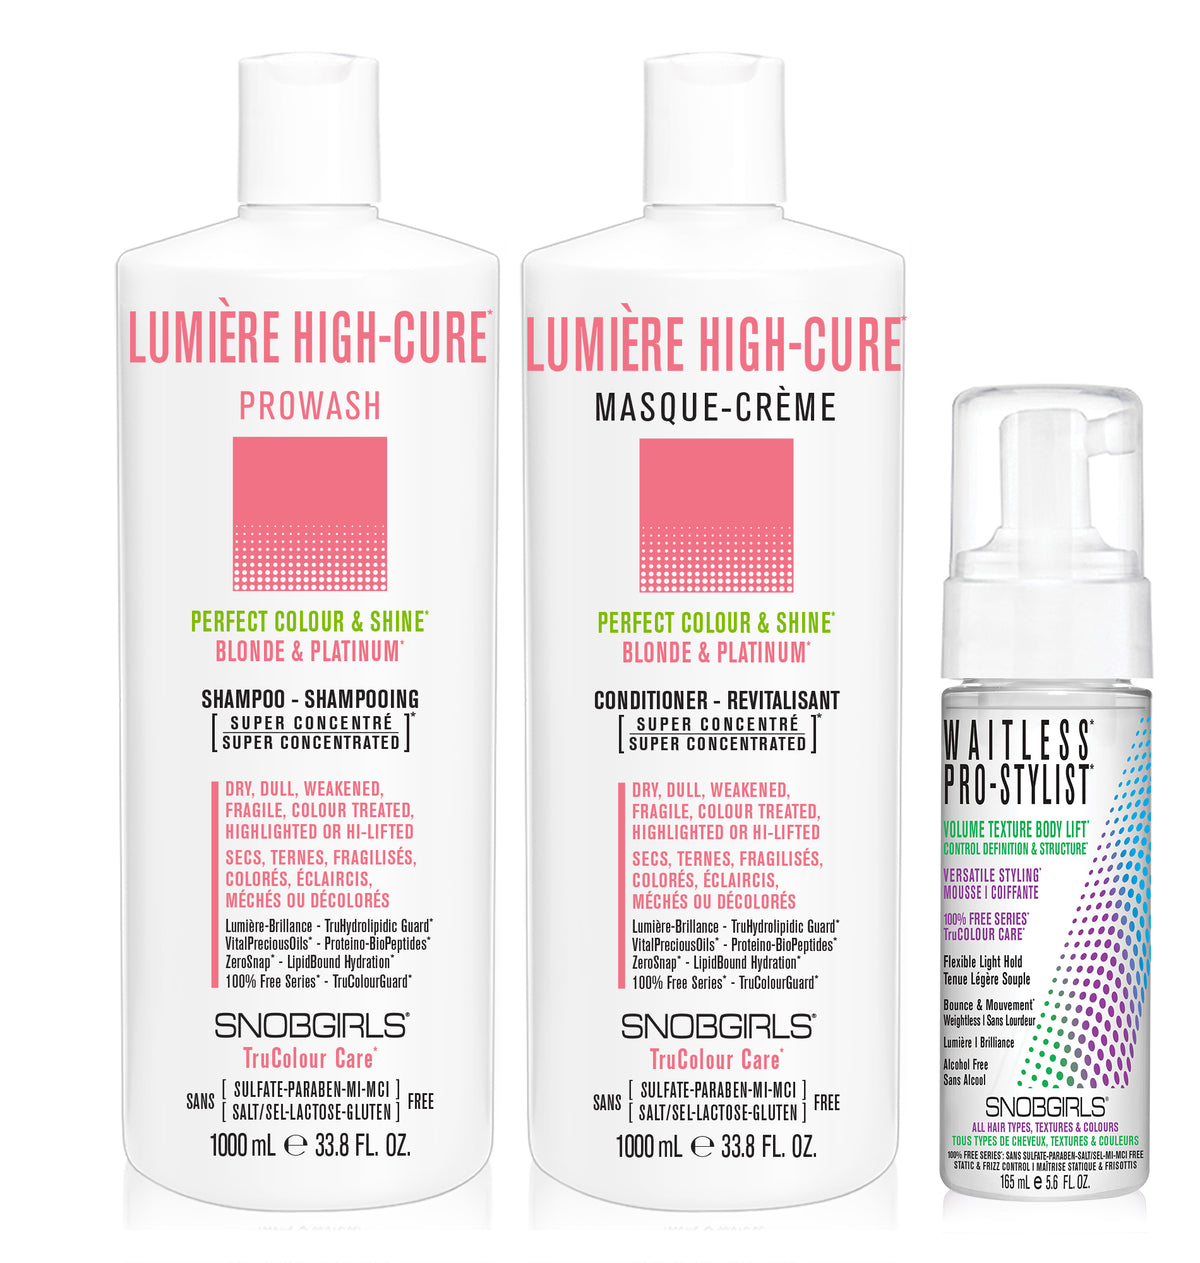 DUO LUMERE HIGH-CURE Bundle- 1 Shampoo 33.8oz. with 1 Conditioner 33.8oz and 1 Styling Mousse - SNOBGIRLS.com